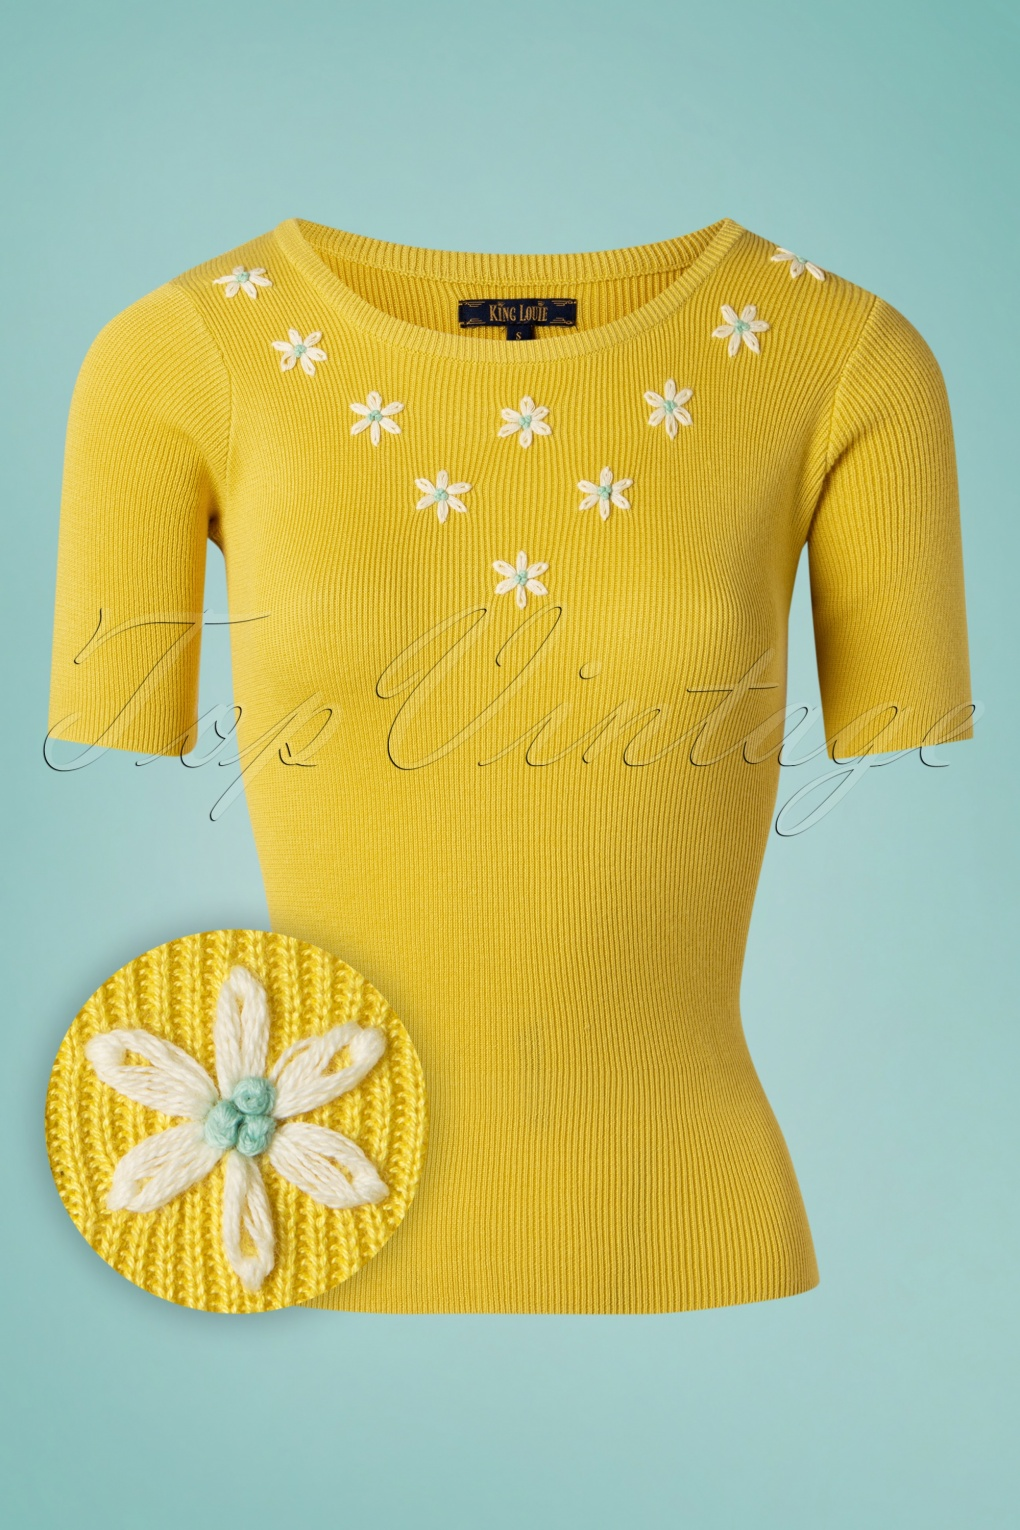 Vintage Sweaters: Cable Knit, Fair Isle Cardigans & Sweaters 70s Lexi Flower Power Top in Sunny Yellow £61.47 AT vintagedancer.com